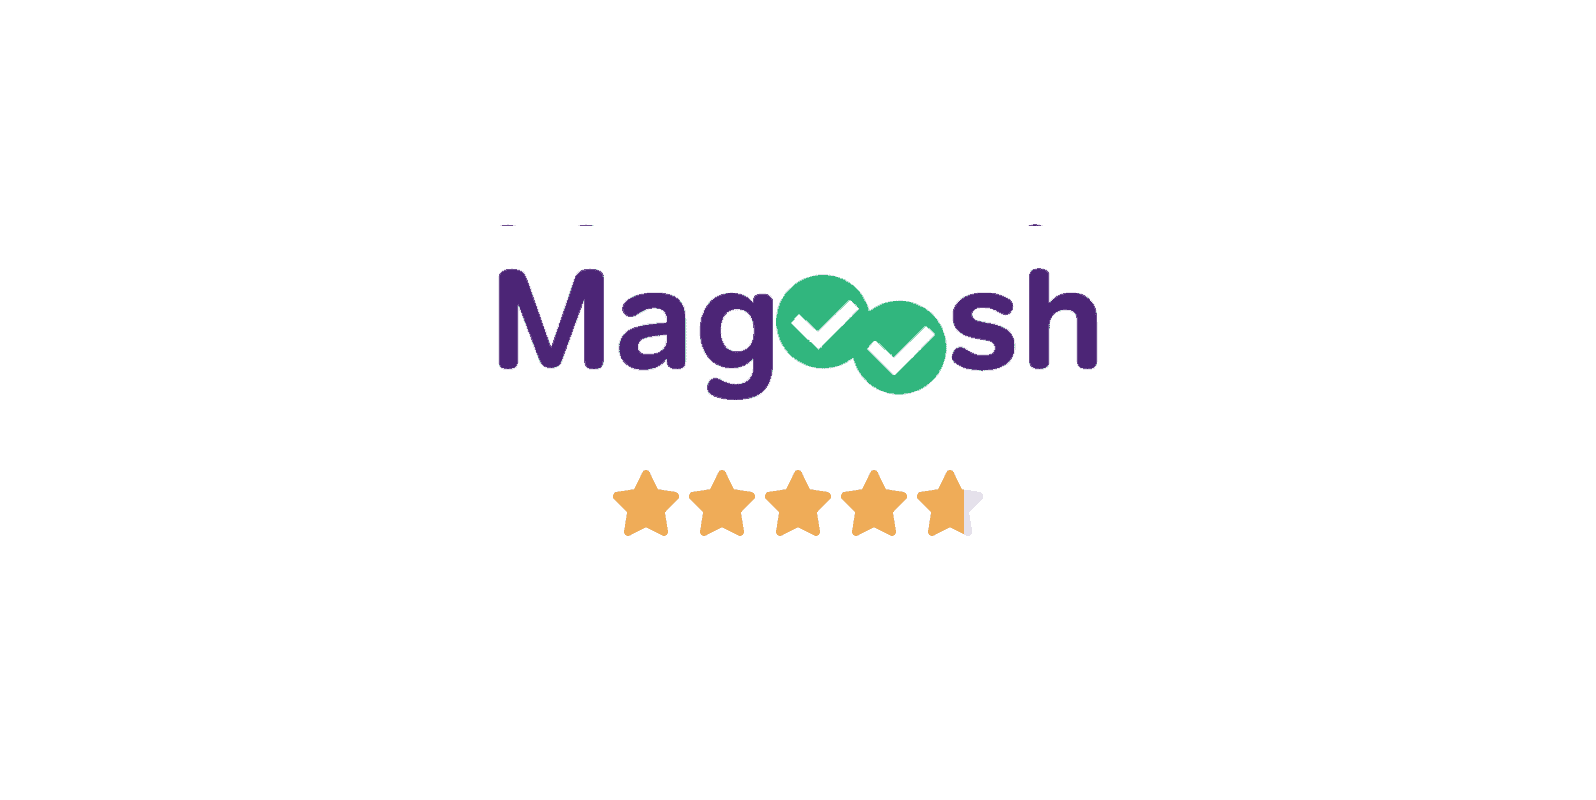 magoosh lsat prep course logo and star rating